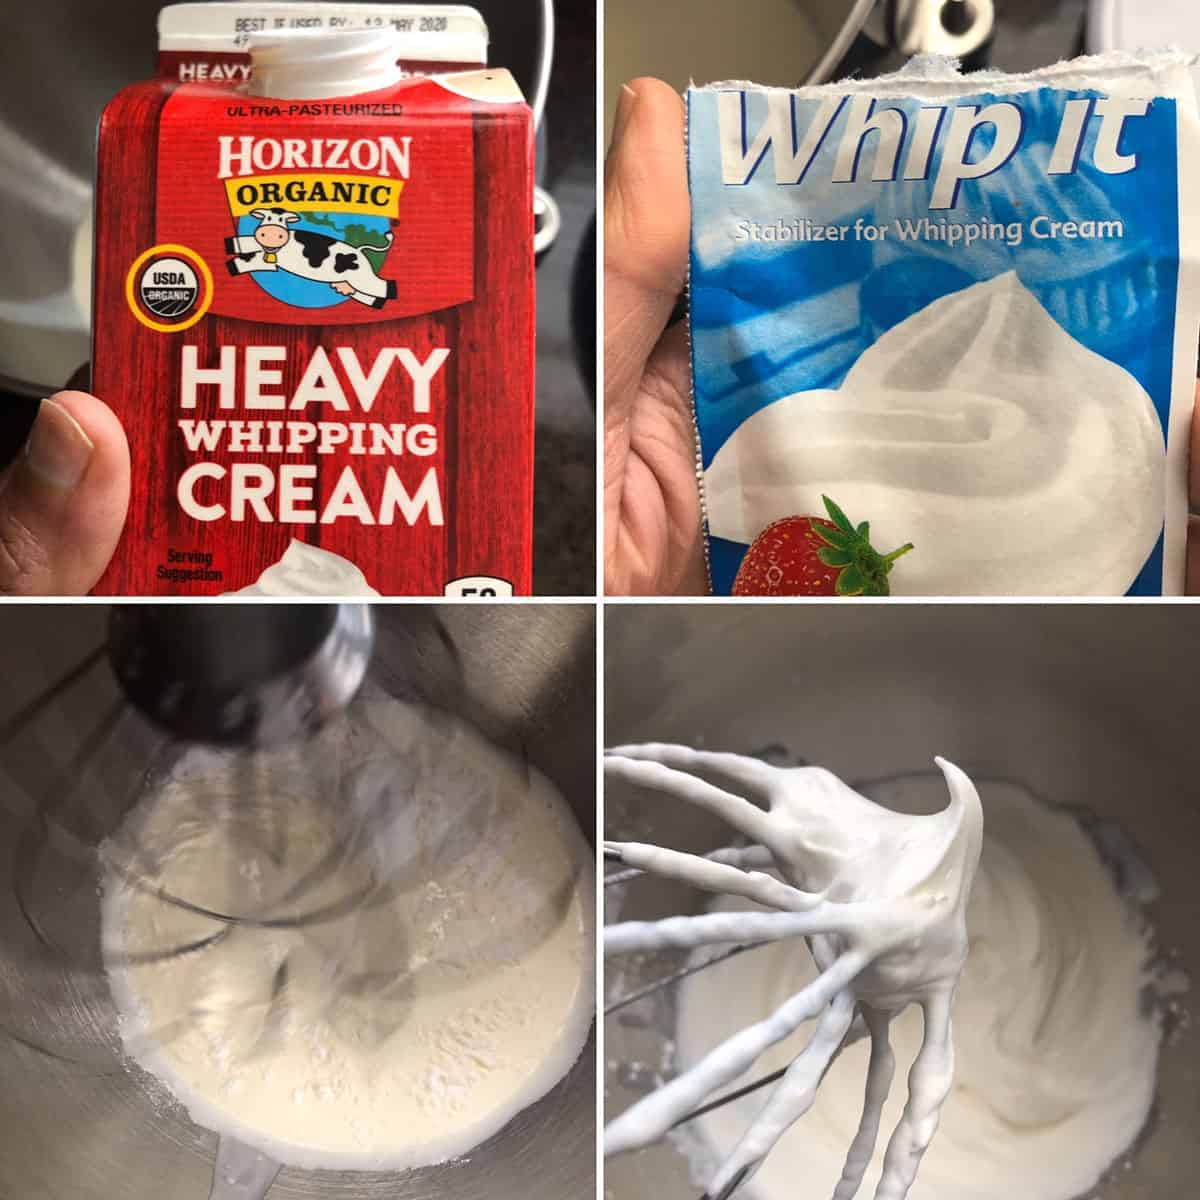 Making whipped cream frosting using heavy cream, stabilizer, confectioners sugar